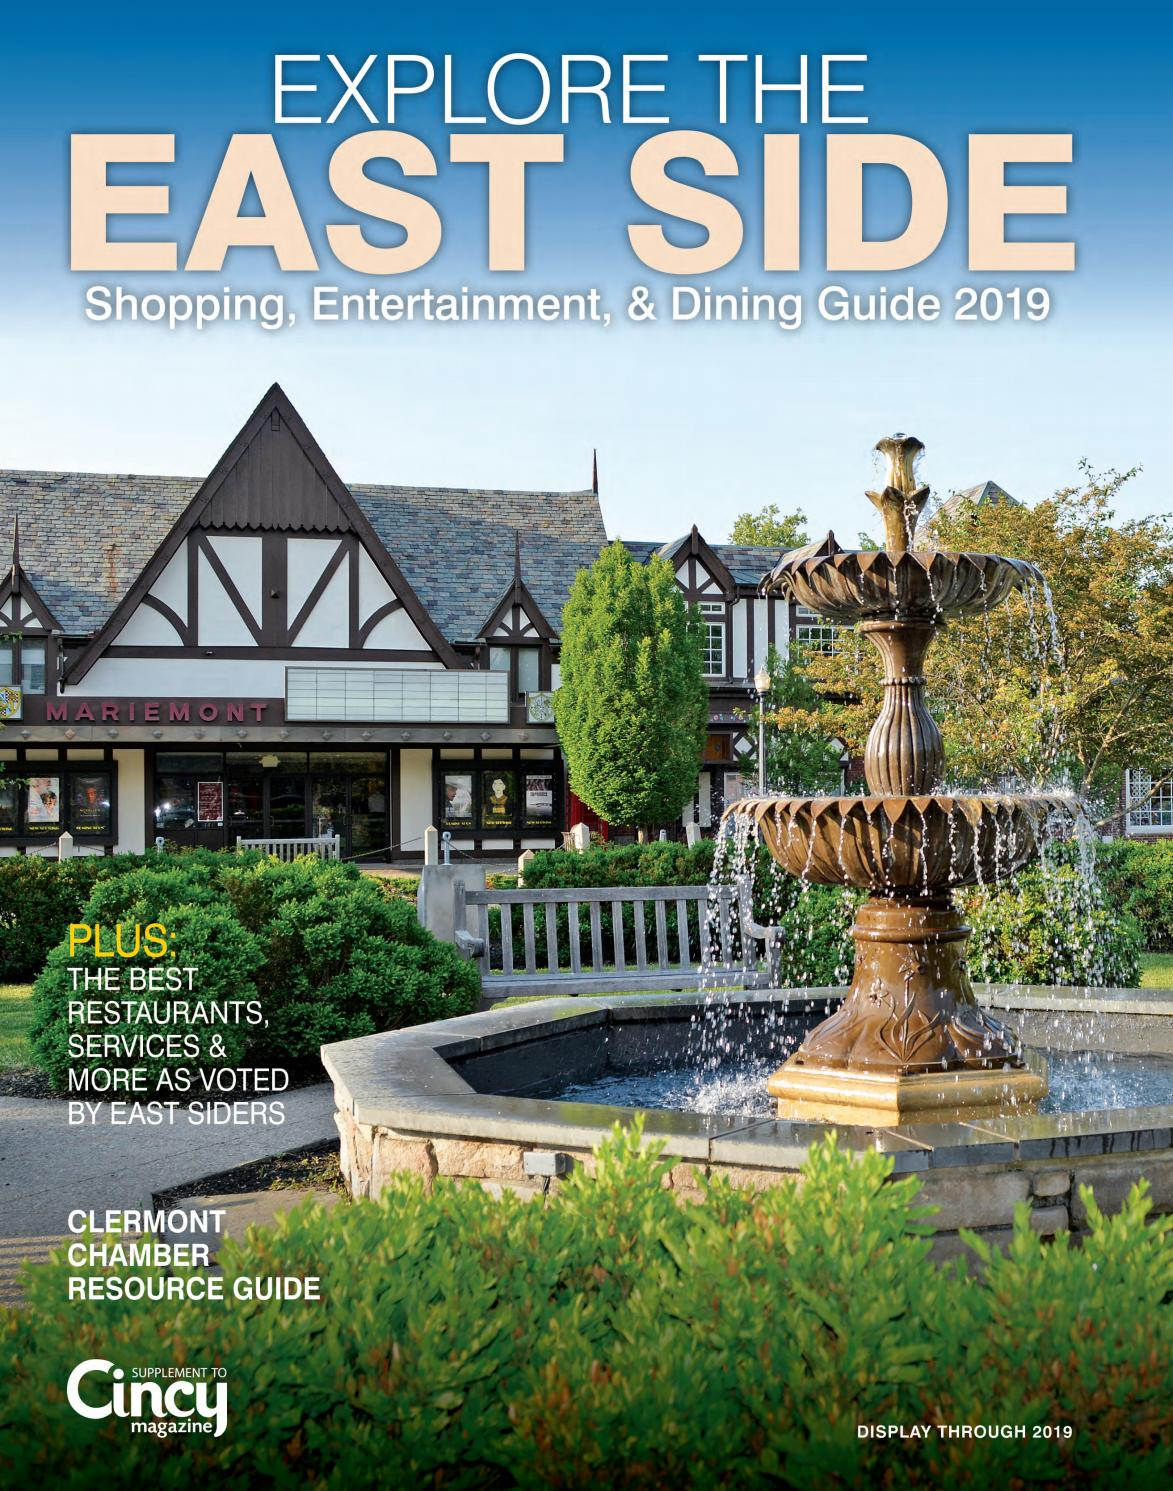 ohio state home decor.htm explore the east side 2019 by cincy magazine issuu  2019 by cincy magazine